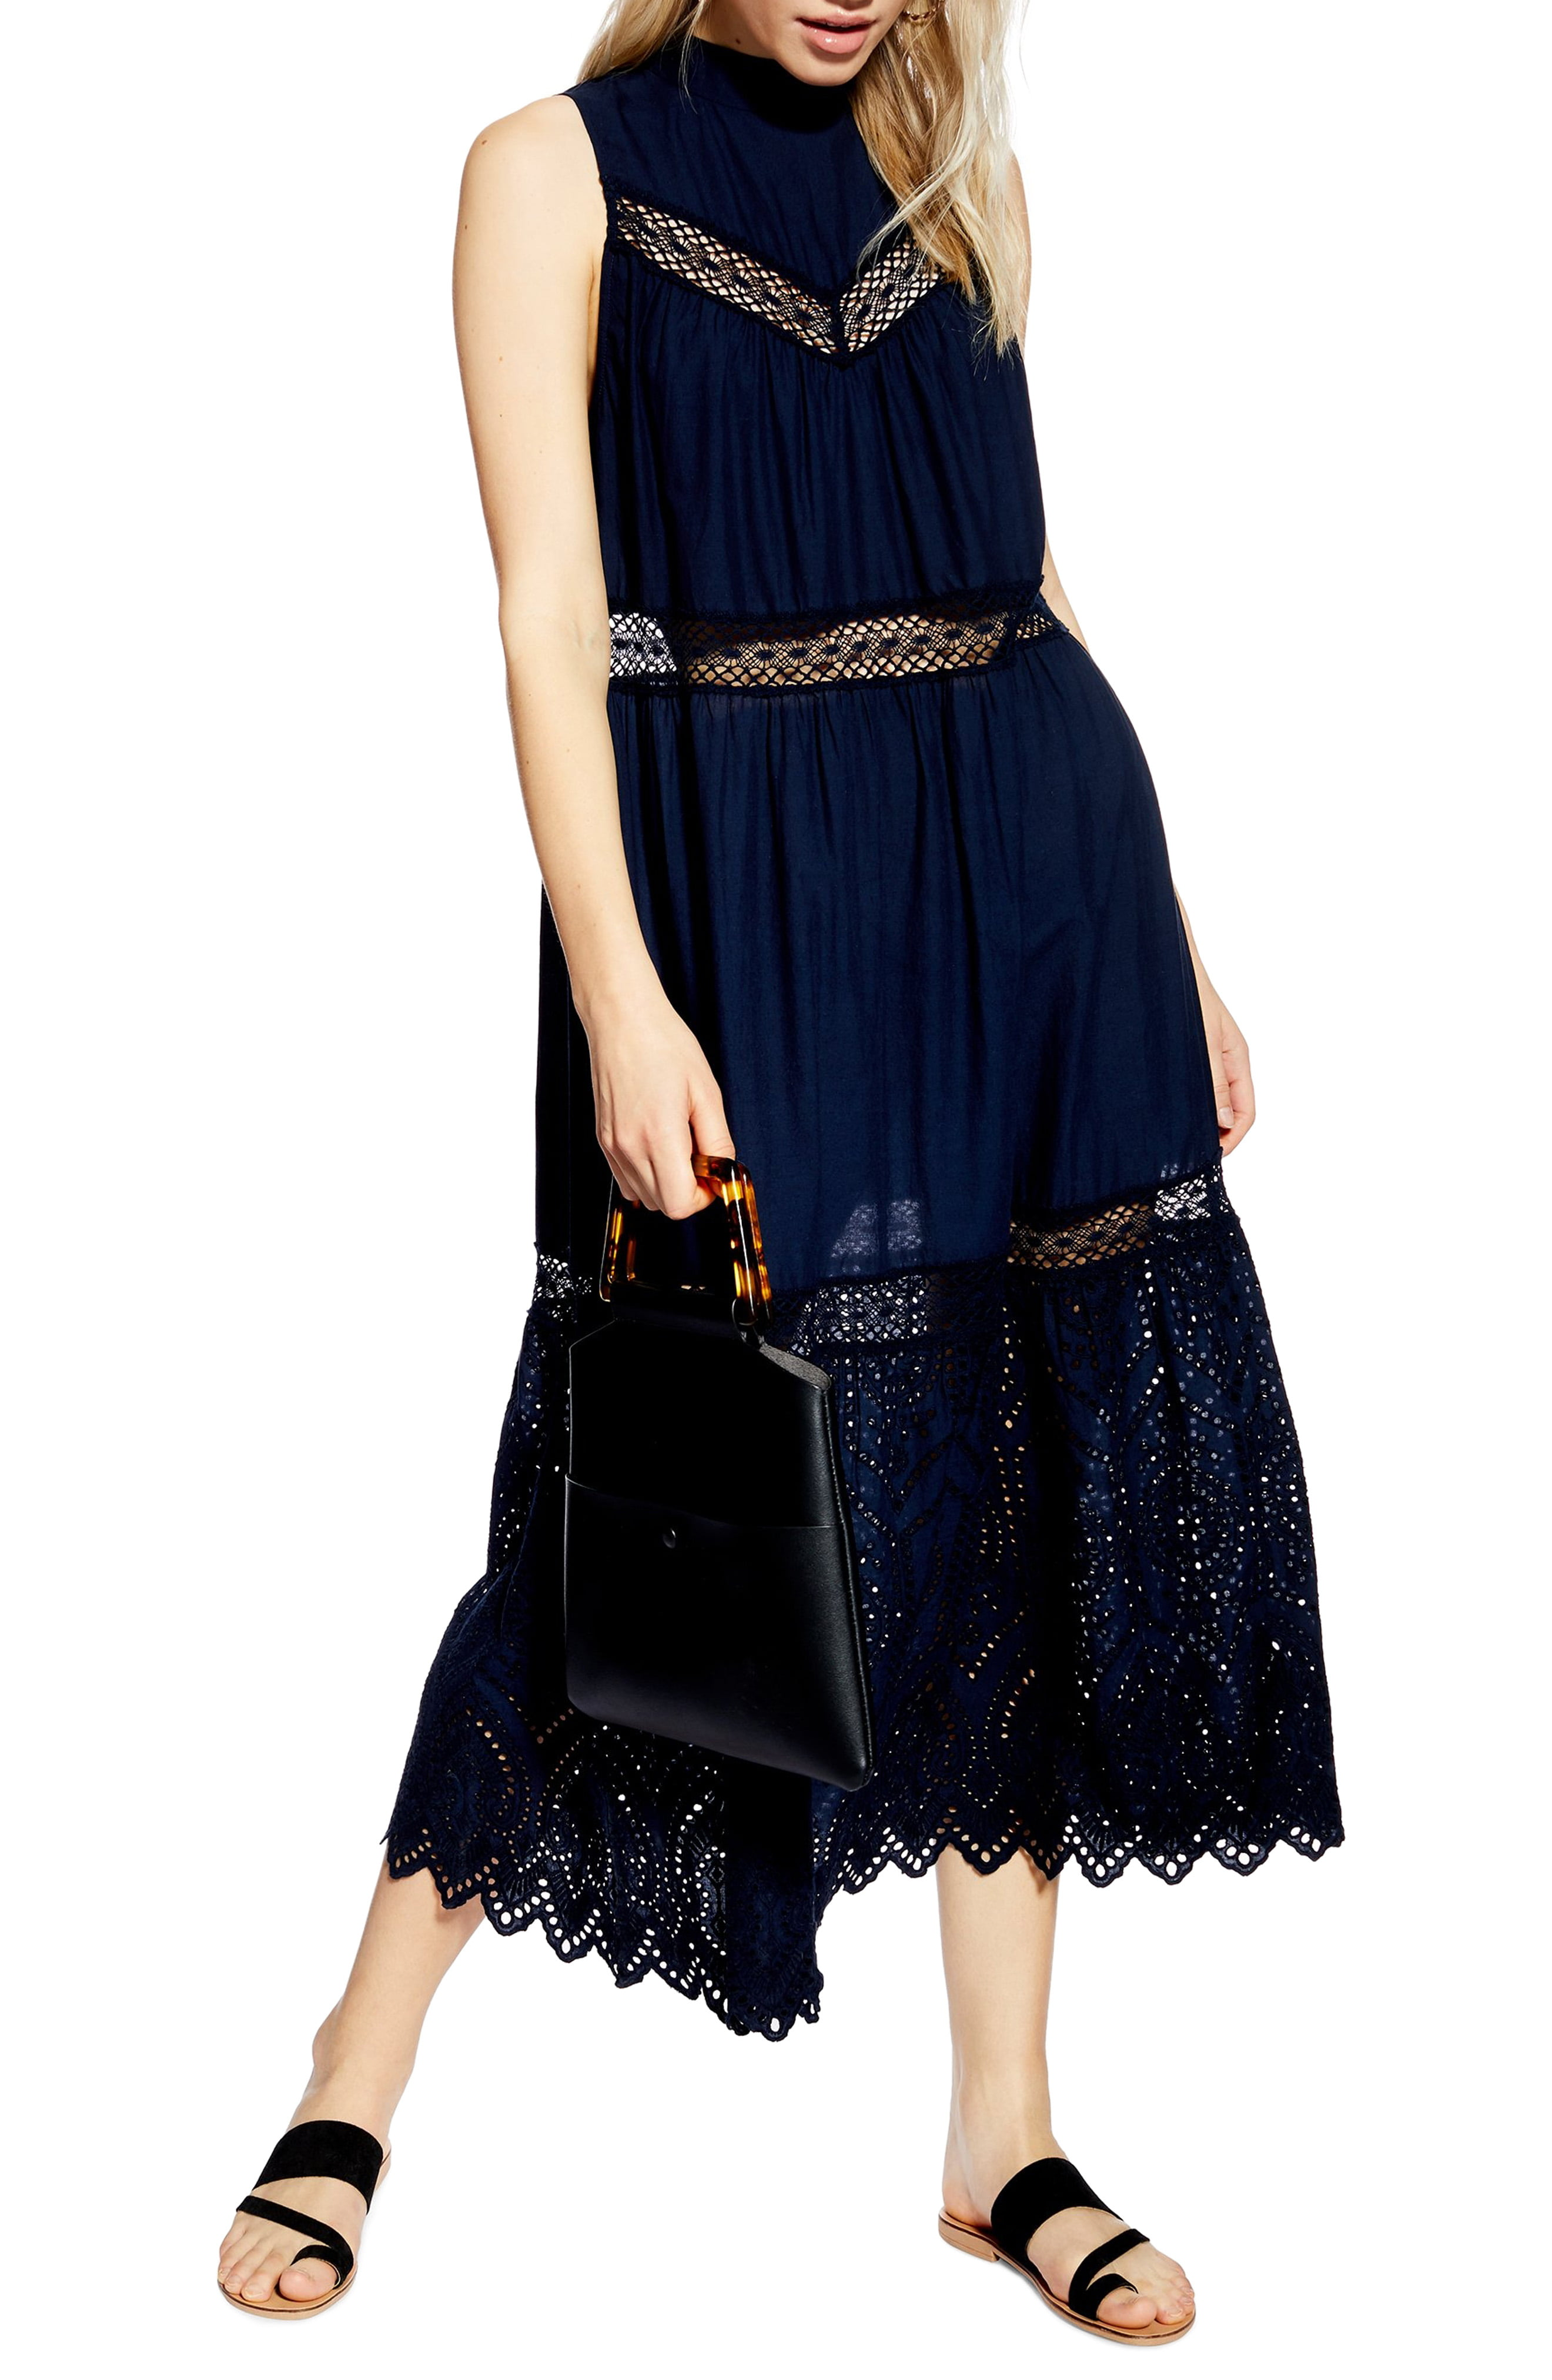 d8e3c79814b8 Topshop Broderie Maxi Dress in 2019   Products   Dresses, Nordstrom ...